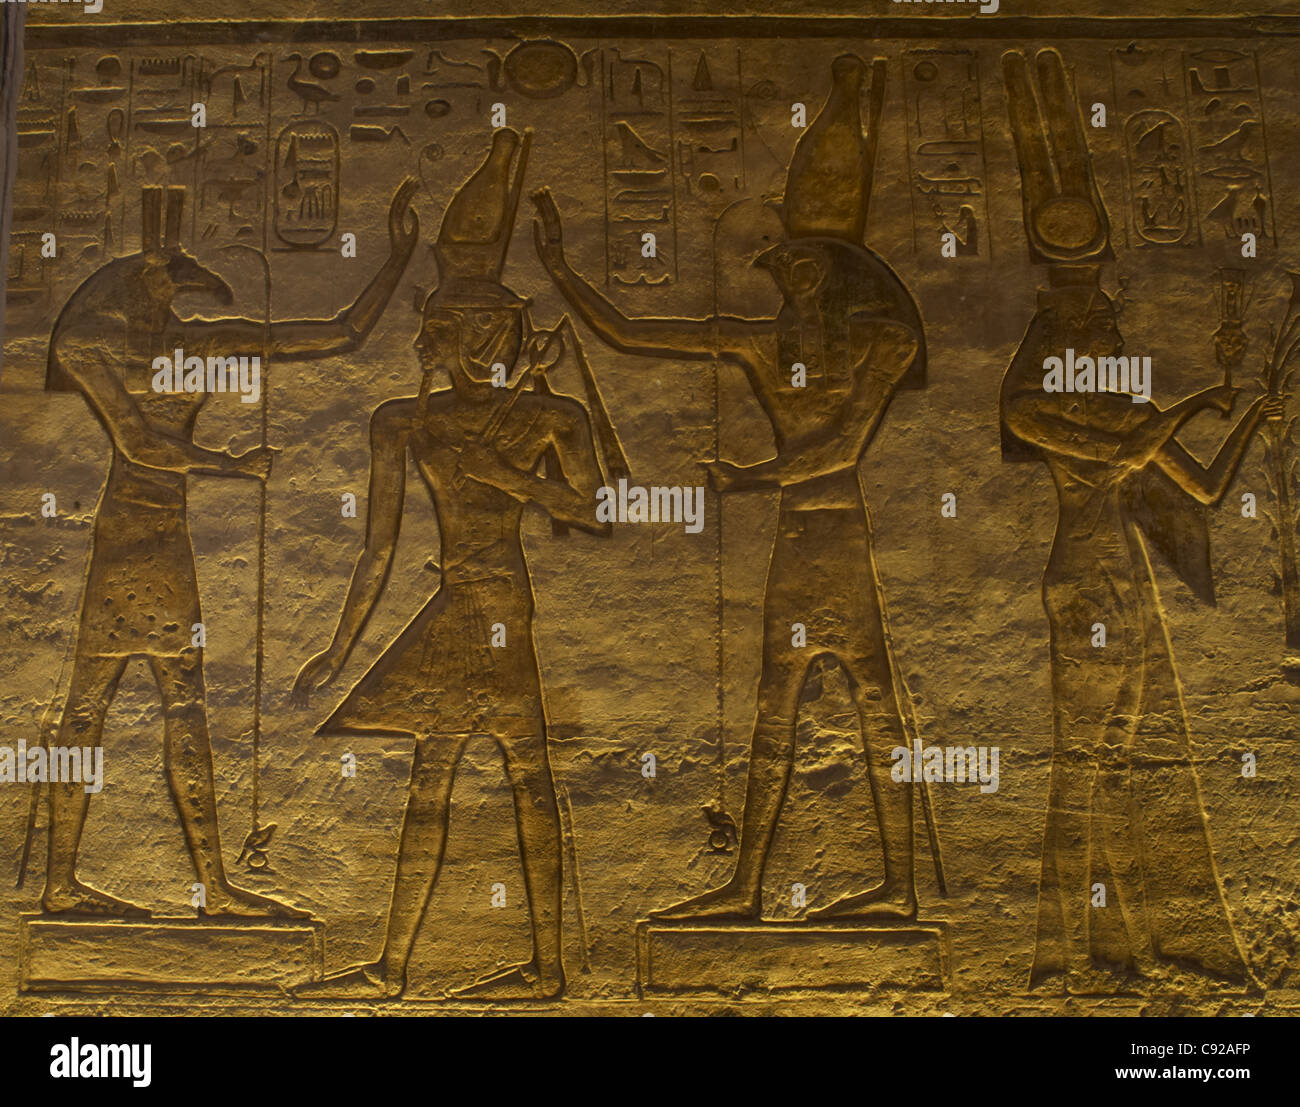 Egyptian art. Small Temple or Temple of Hathor. The gods Set (left) and Horus (right) adoring Ramses II. Abu Simbel. - Stock Image